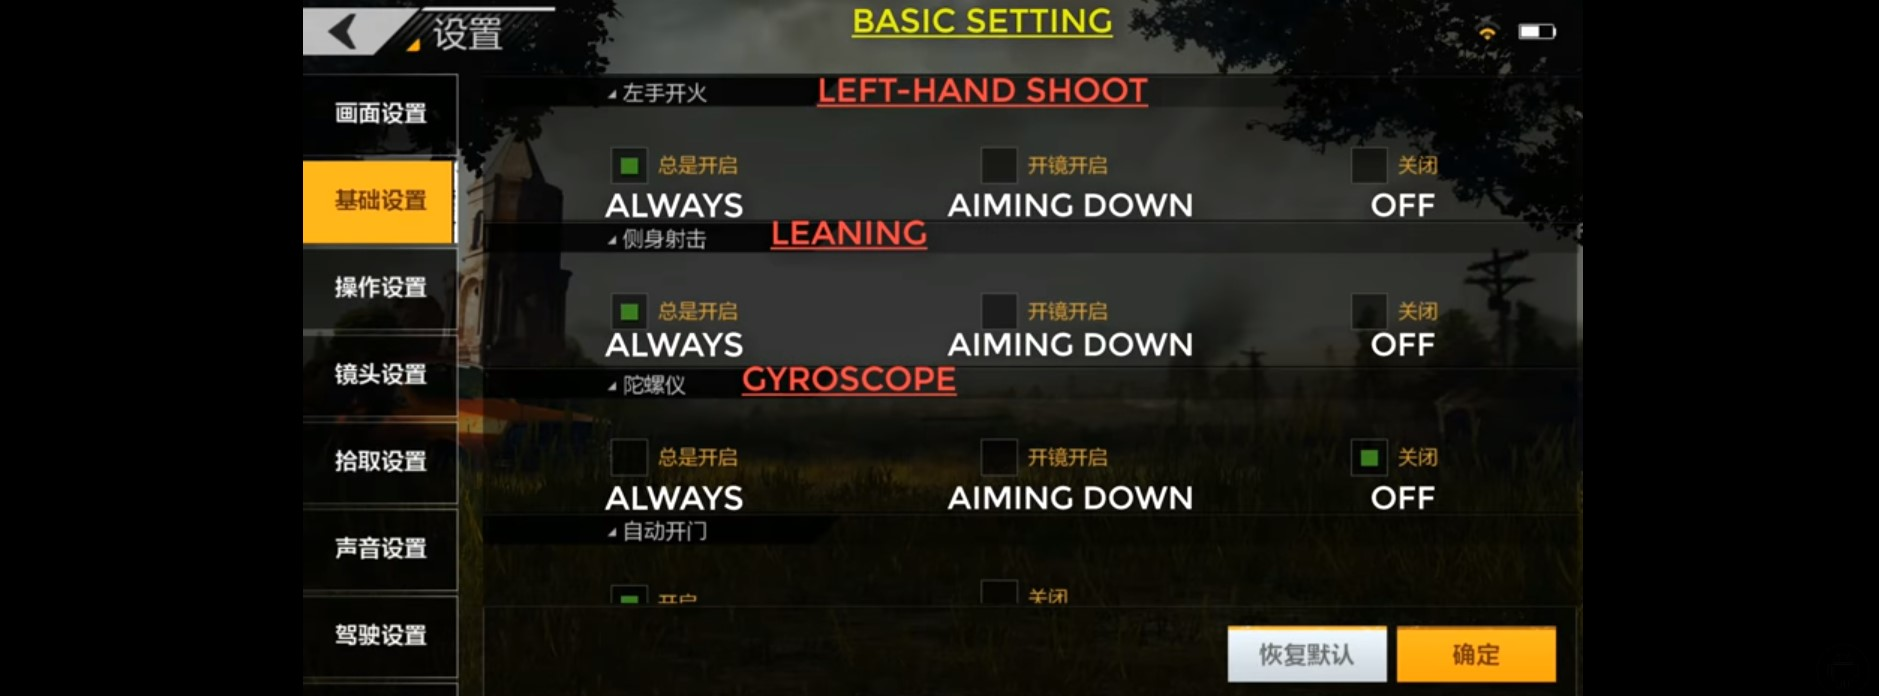 How To Change Graphics From Pubg Mobile Battlefield On: How To Change PUBG Mobile Language To English